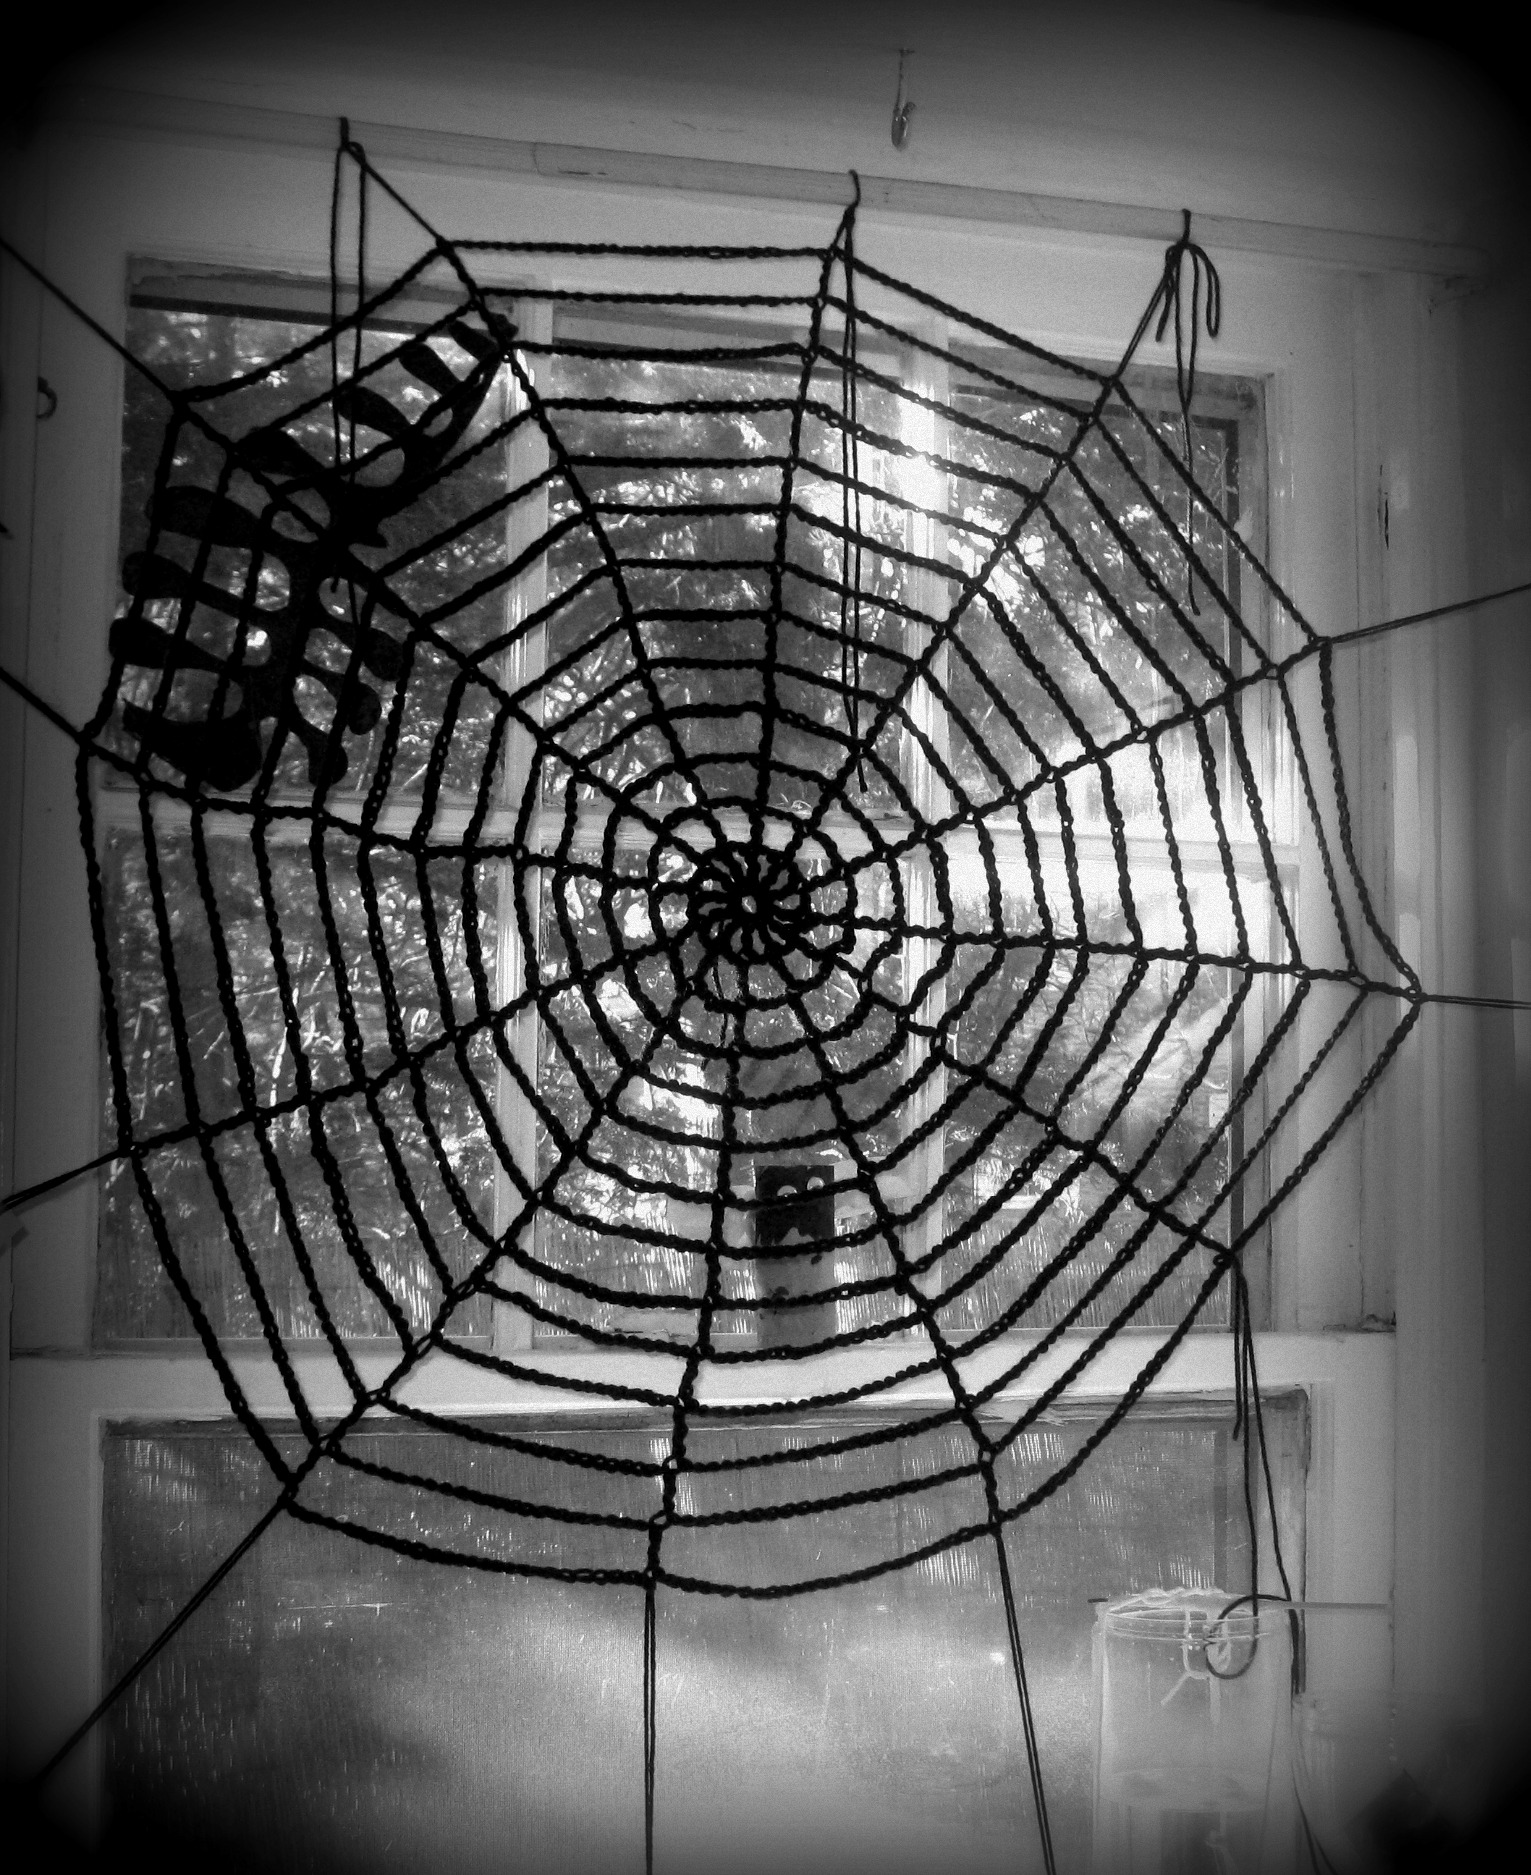 Spider Web Halloween Decorations: Crochet Pattern For Spider Web Afghan